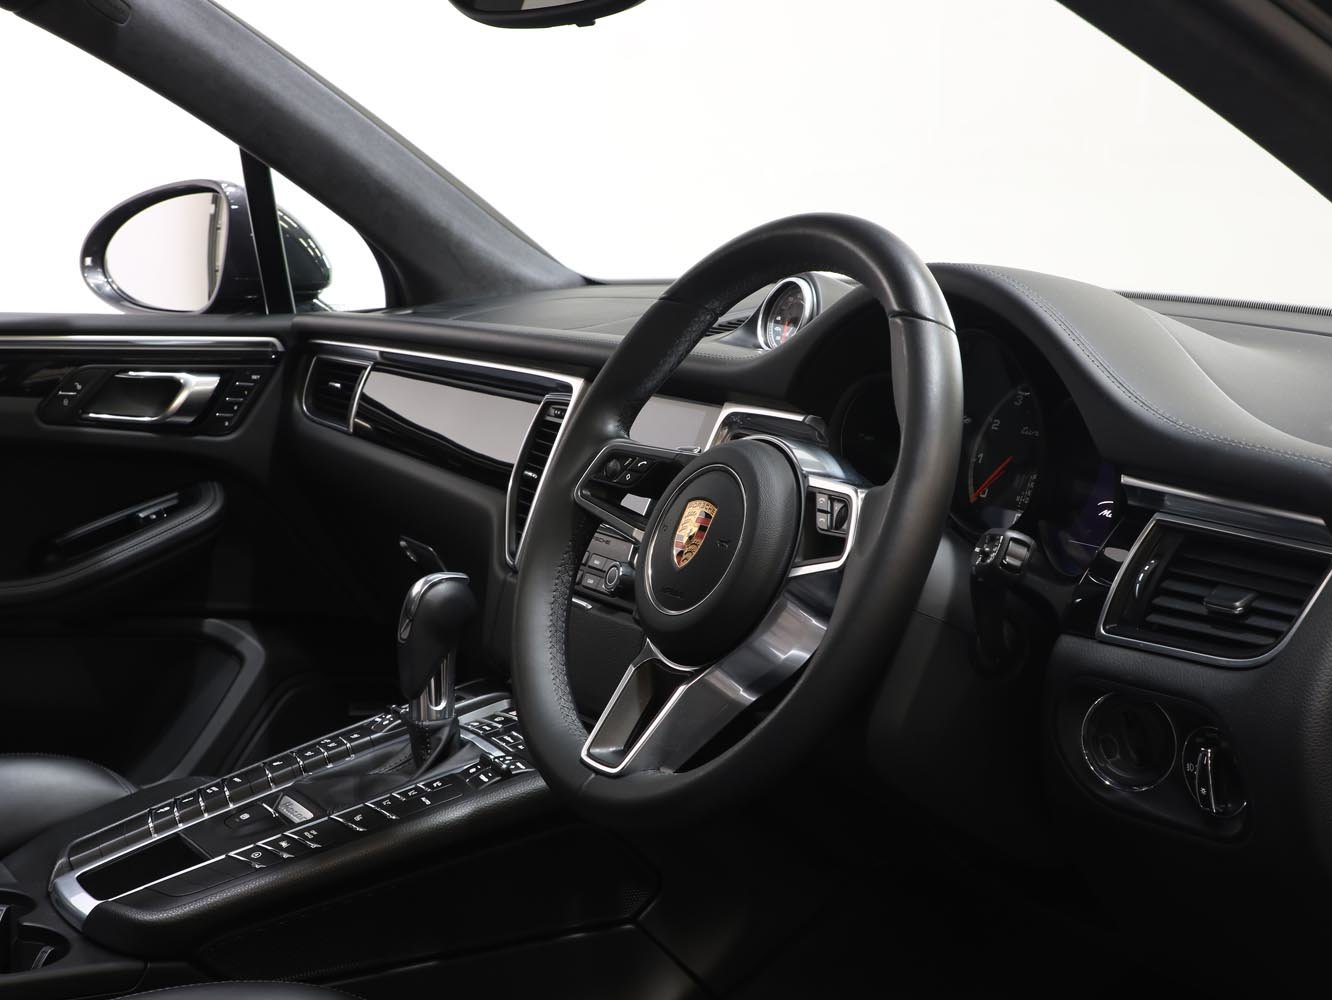 2017 17 17 PORSCHE 3.6T MACAN TURBO PDK AUTO For Sale (picture 4 of 6)